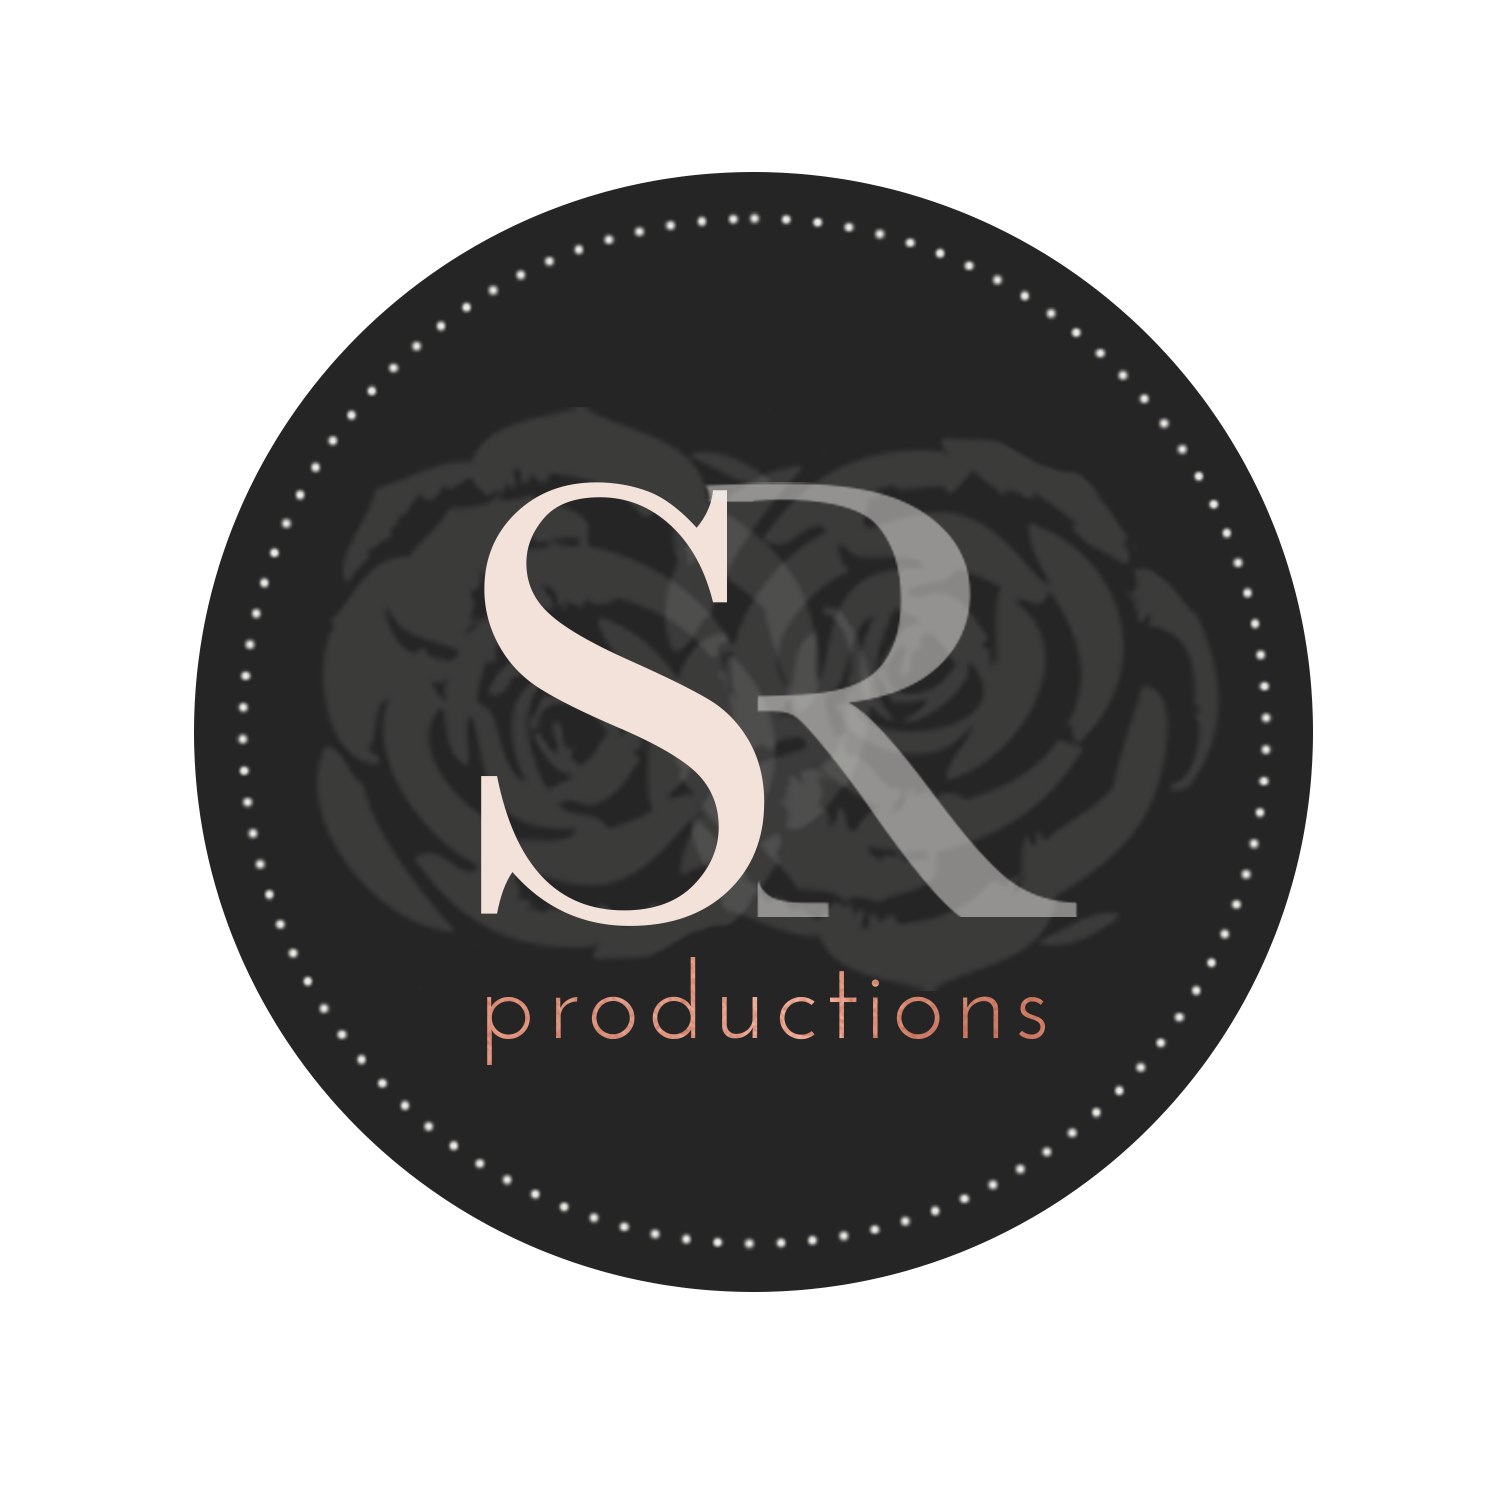 Starry Rose Productions